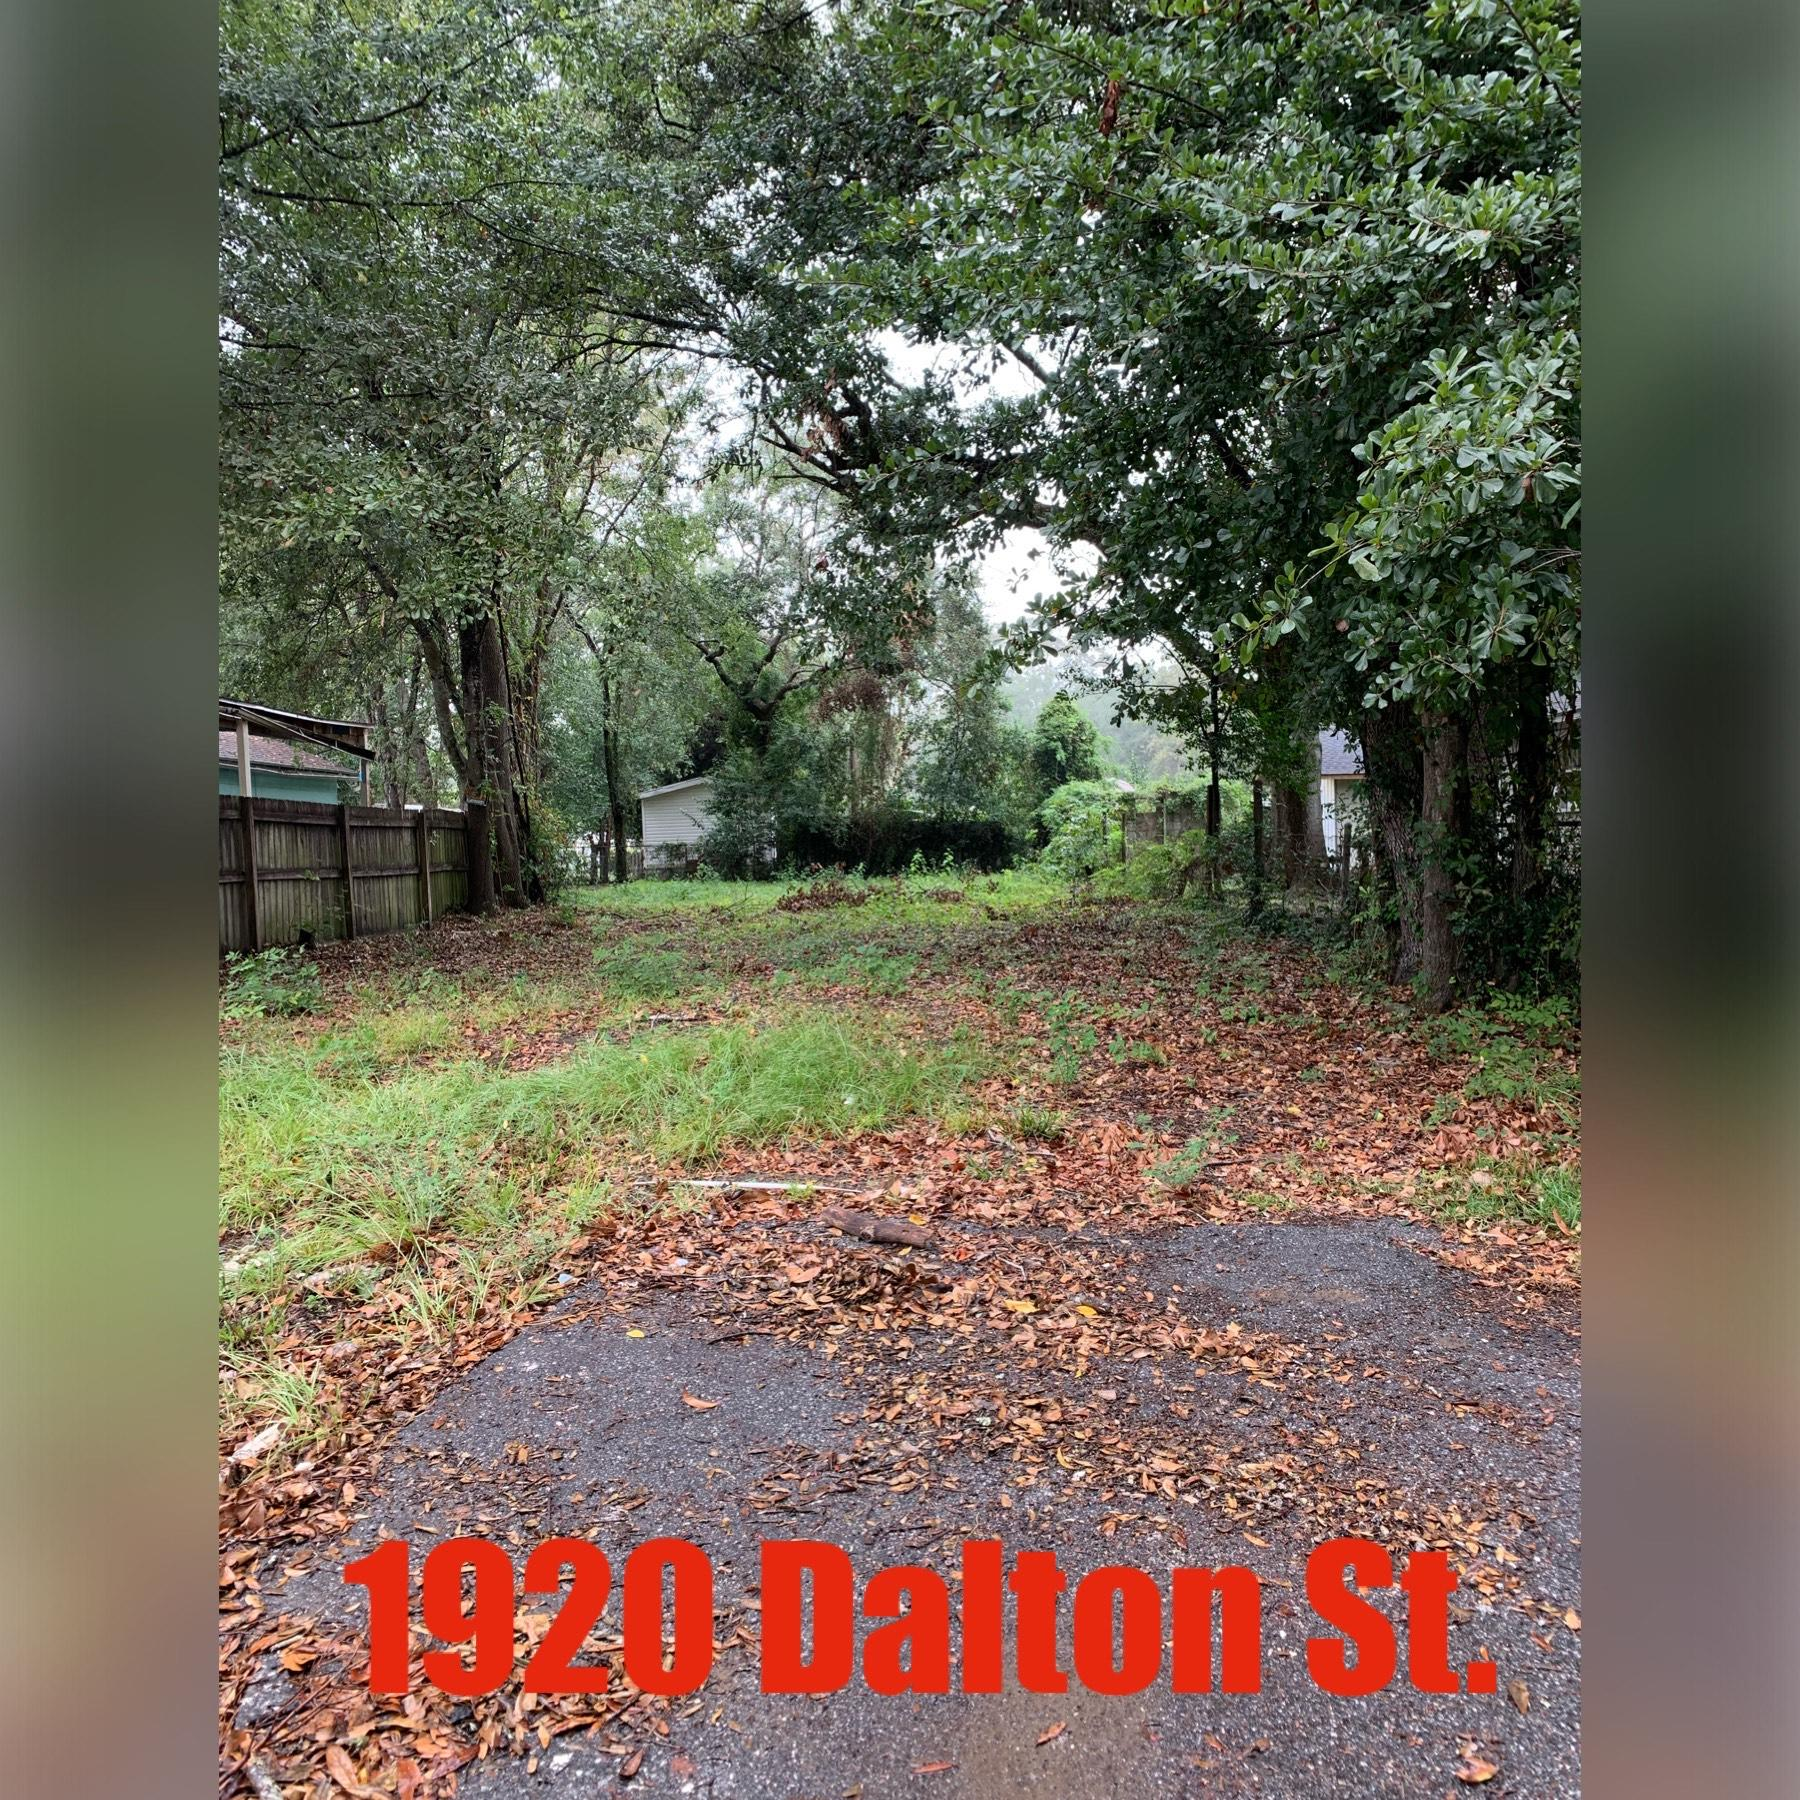 1920 Dalton North Charleston, SC 29406